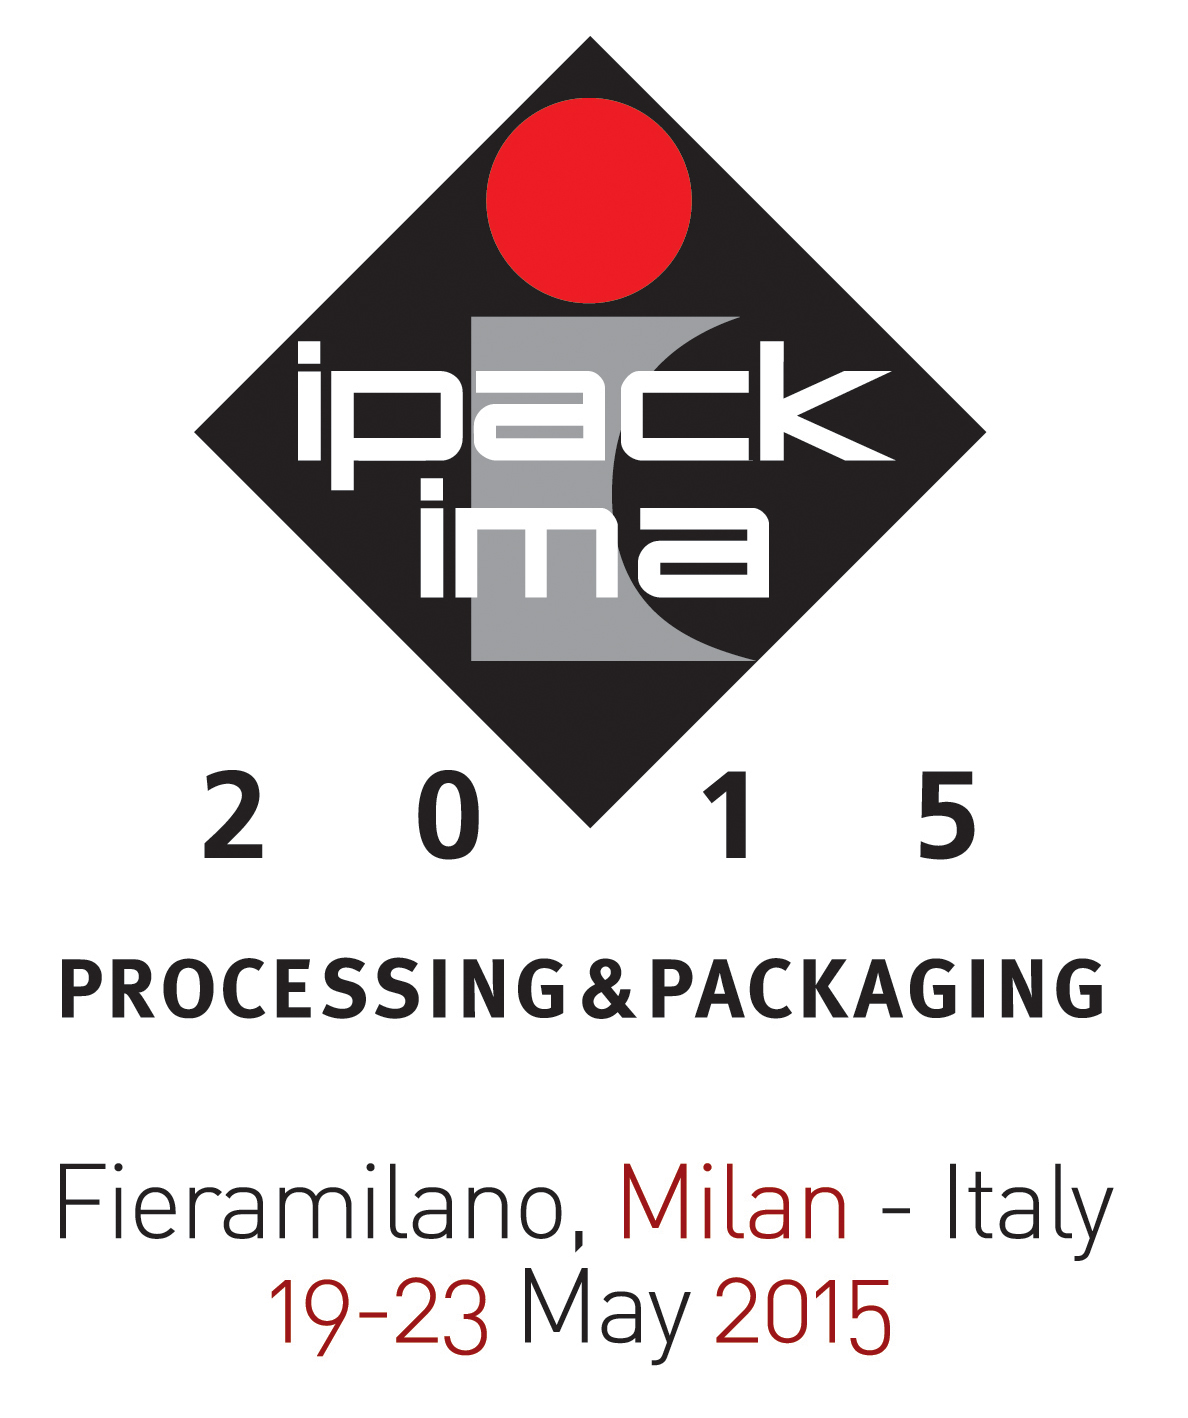 IPACK-IMA is among the most attractive international exhibitions for suppliers of technology and materials for Processing & Packaging.